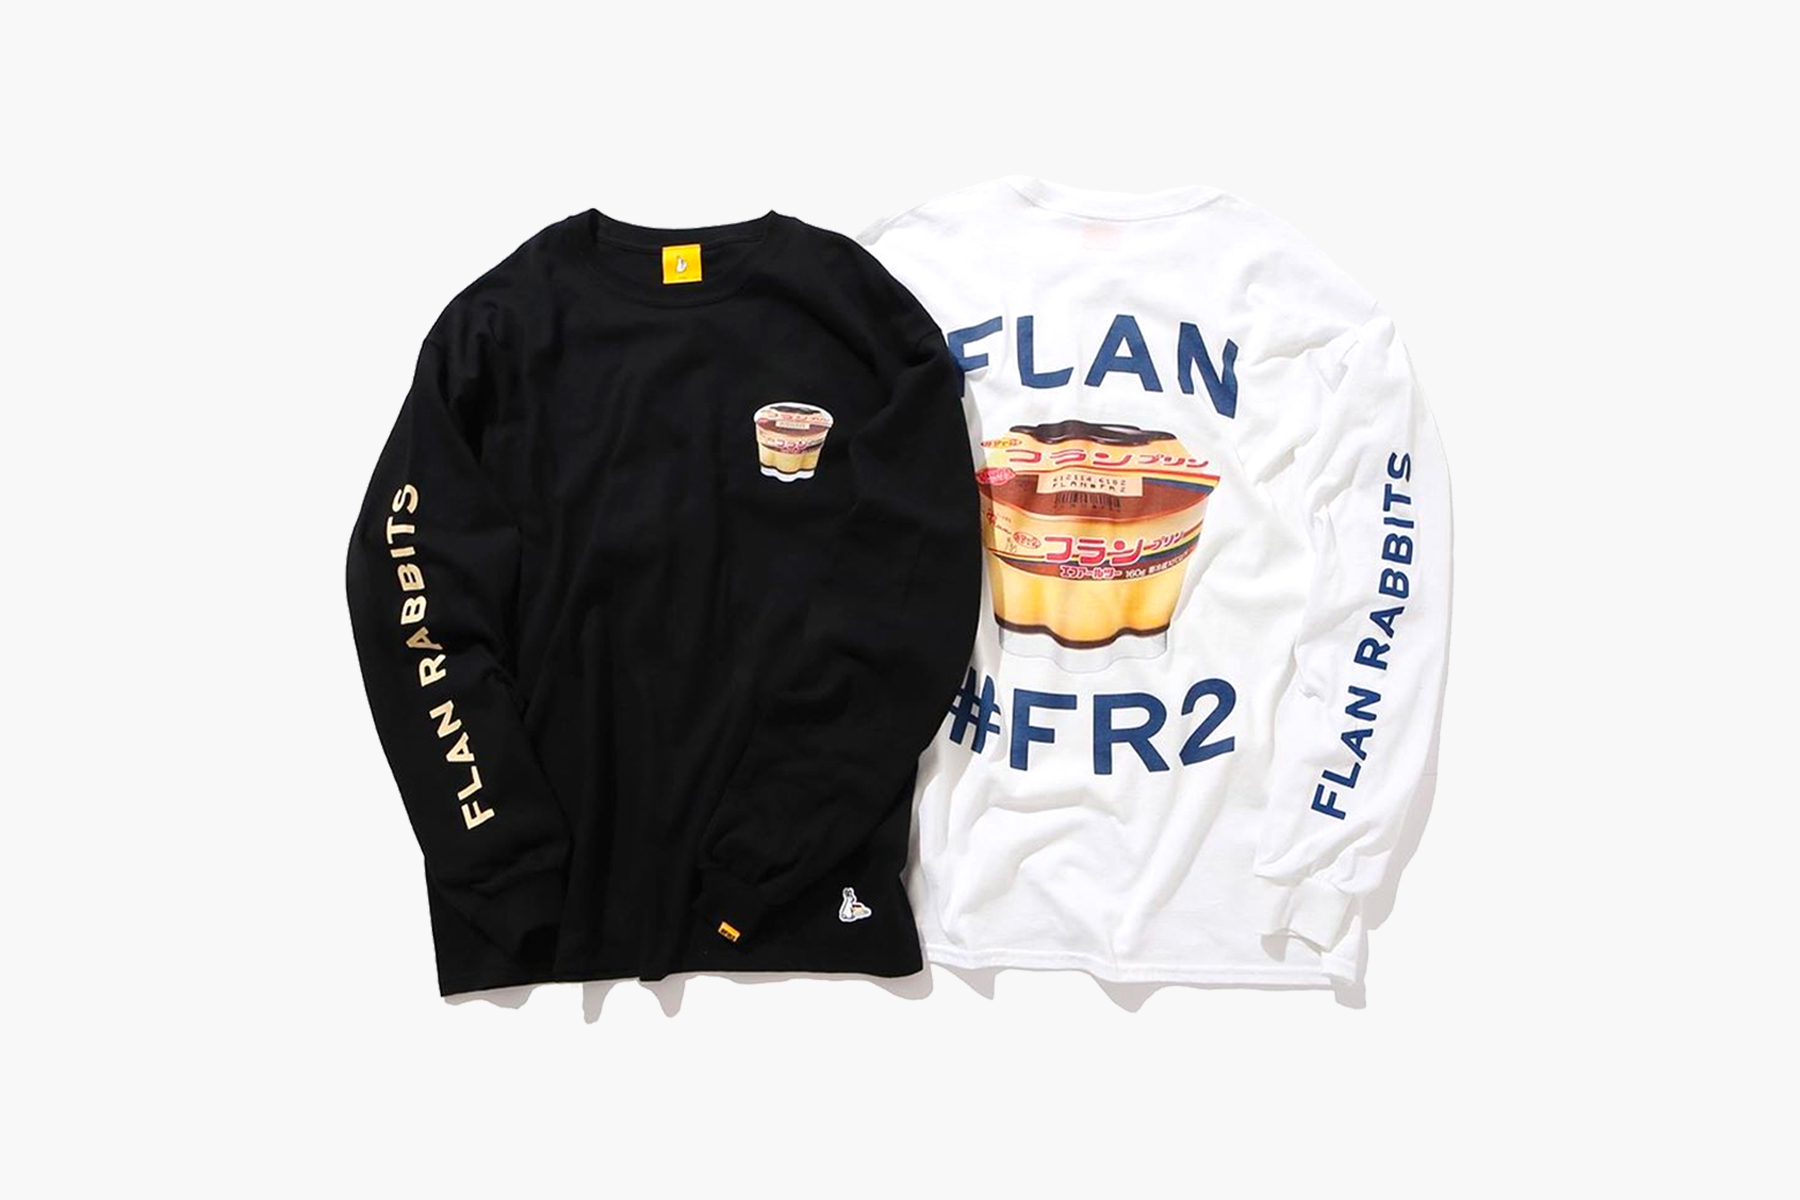 FLAN Labs x Fxxking Rabbits Capsule Collection